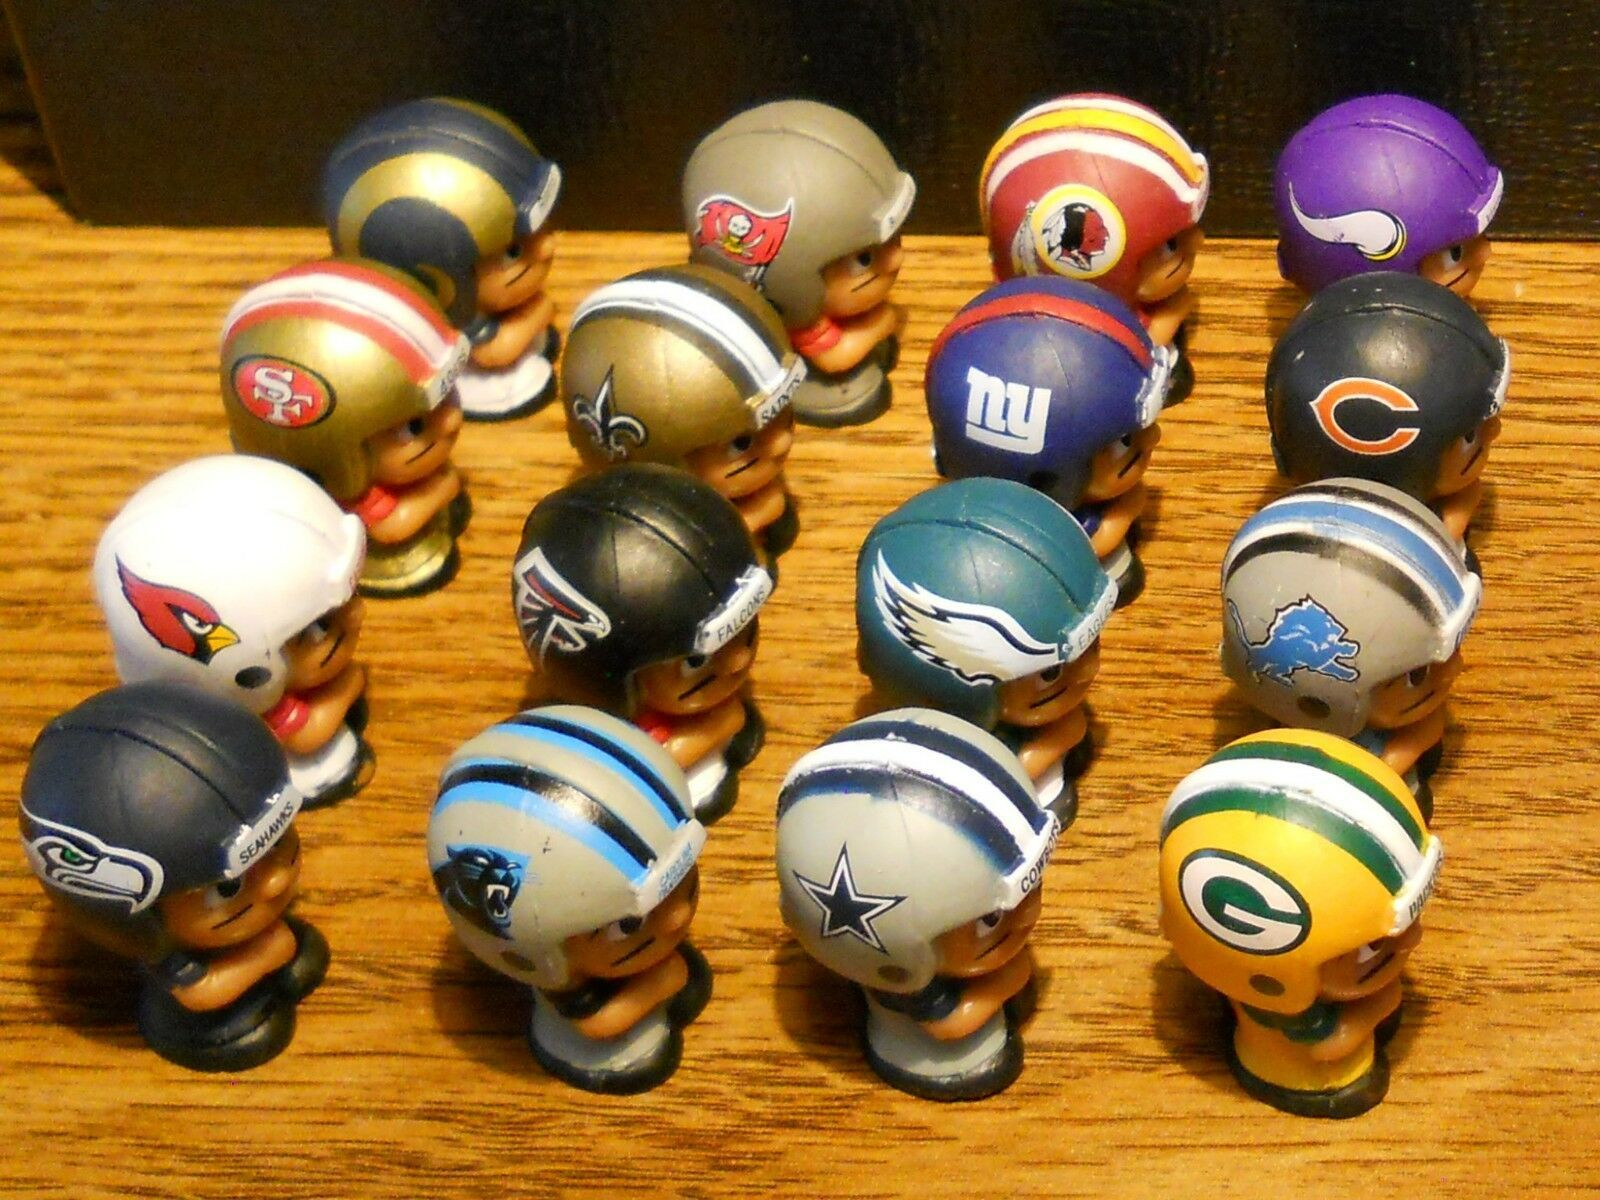 2013 NFL FOOTBALL TEENYMATES FIGURES SERIES 2 -  PICK YOUR FOOTBALL TEAM FIGURE image 3